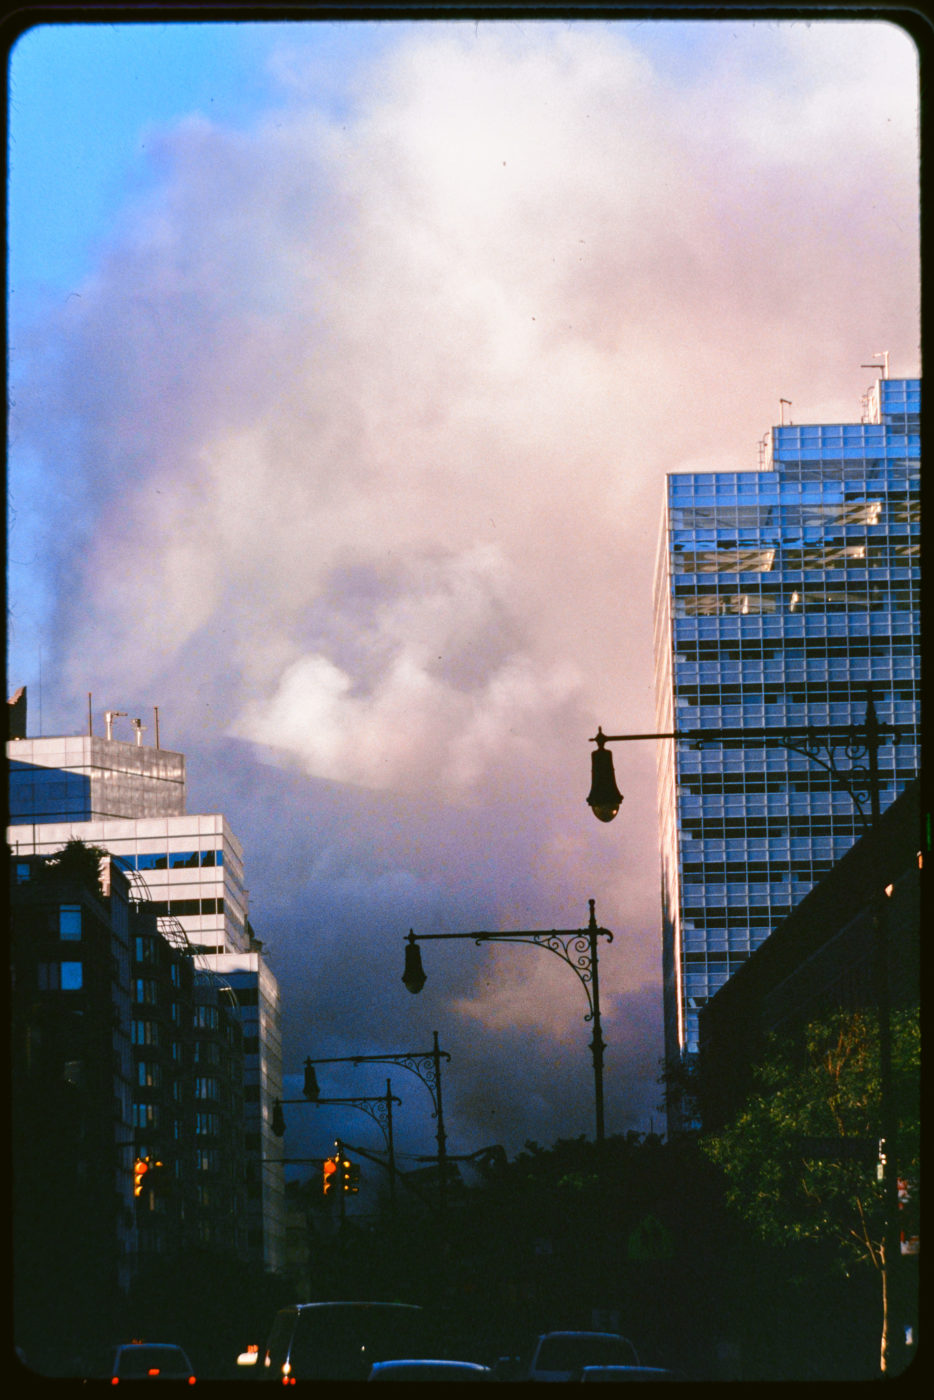 Sky Full of Smoke Ahead as Greenwich Street is Covered by a Shadow.jpg